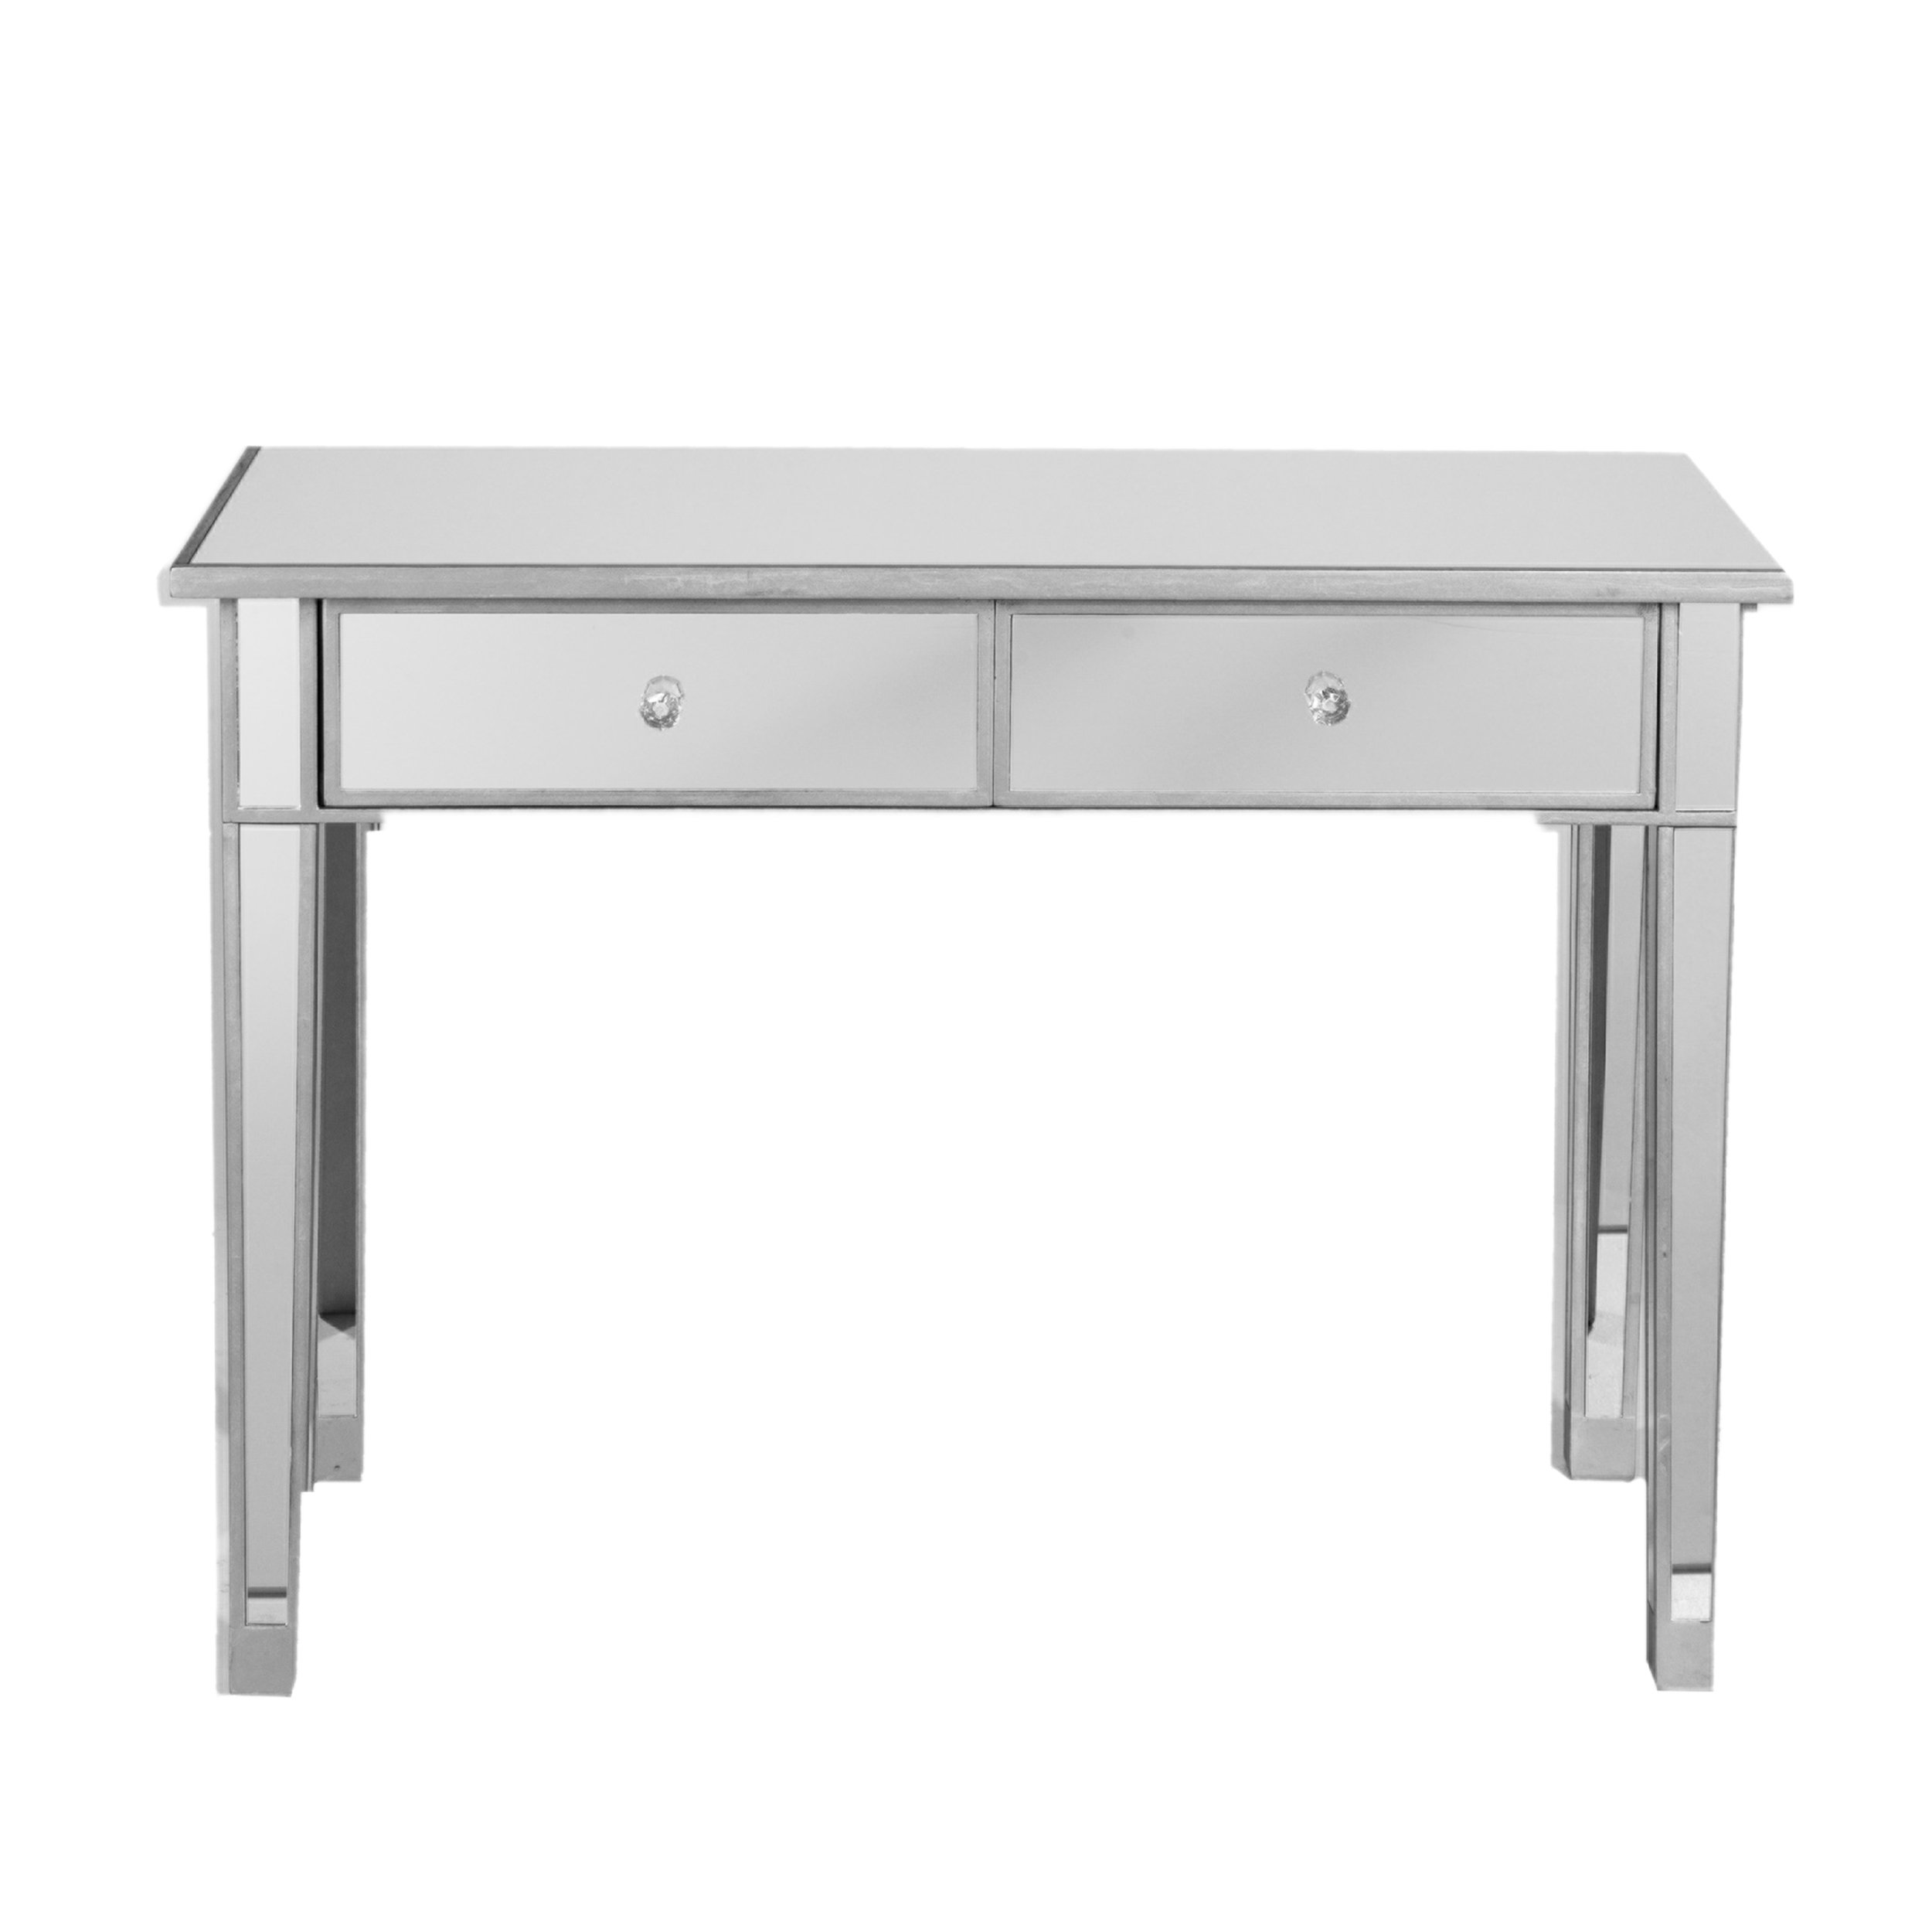 Southern Enterprises Mirage Mirrored 2 Drawer Media Console Table, Matte Silver Finish with Faux Crystal Knobs by Southern Enterprises